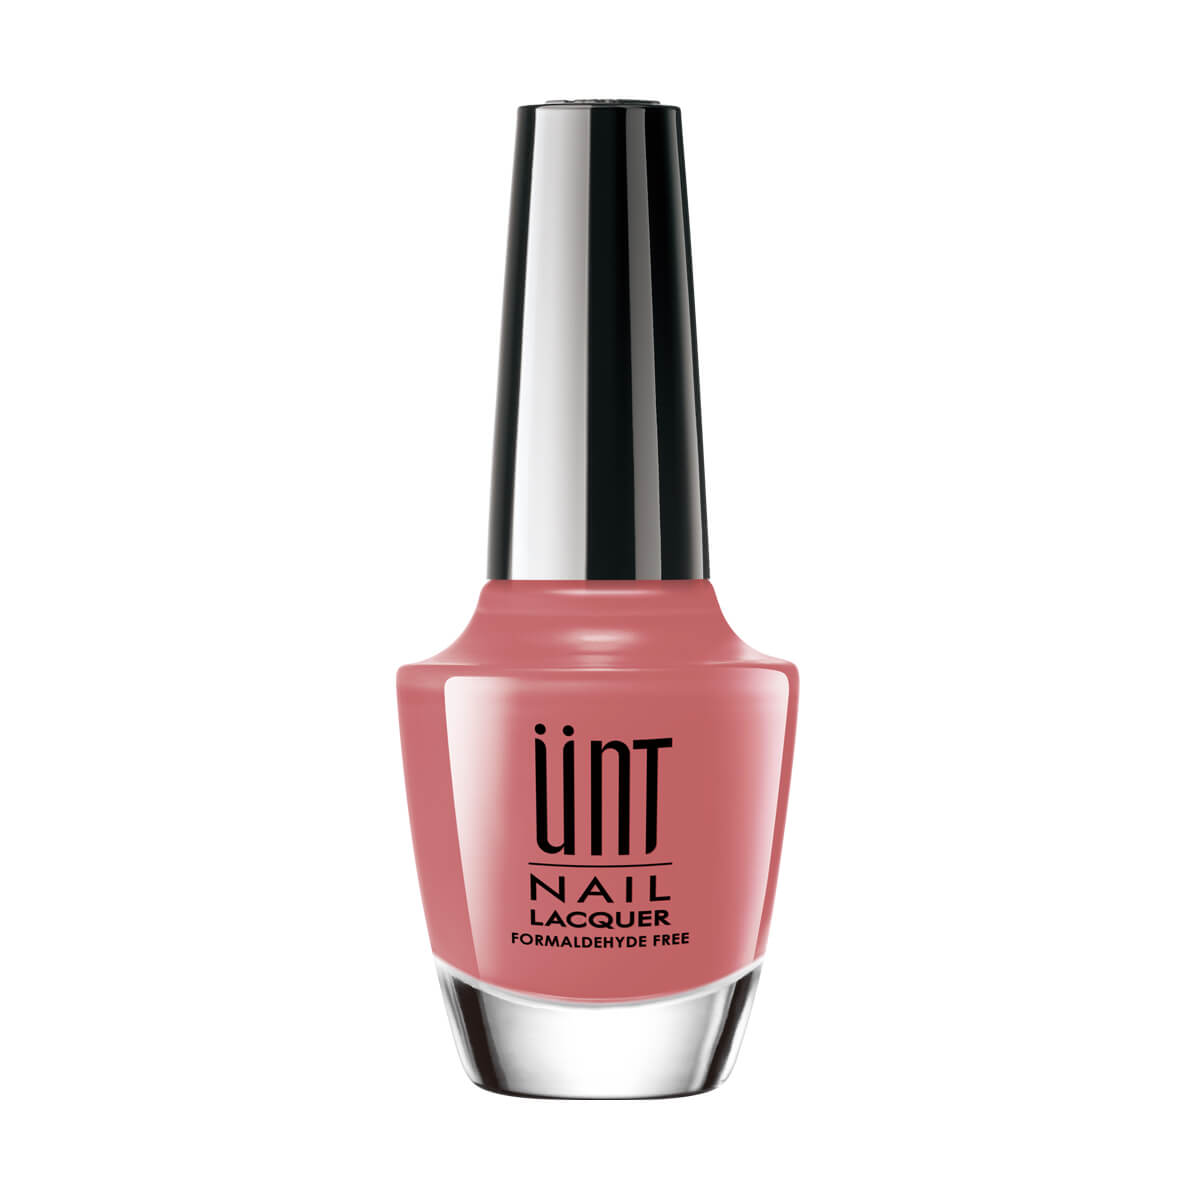 UNT Nail Lacquer - Splendid Summer Collection